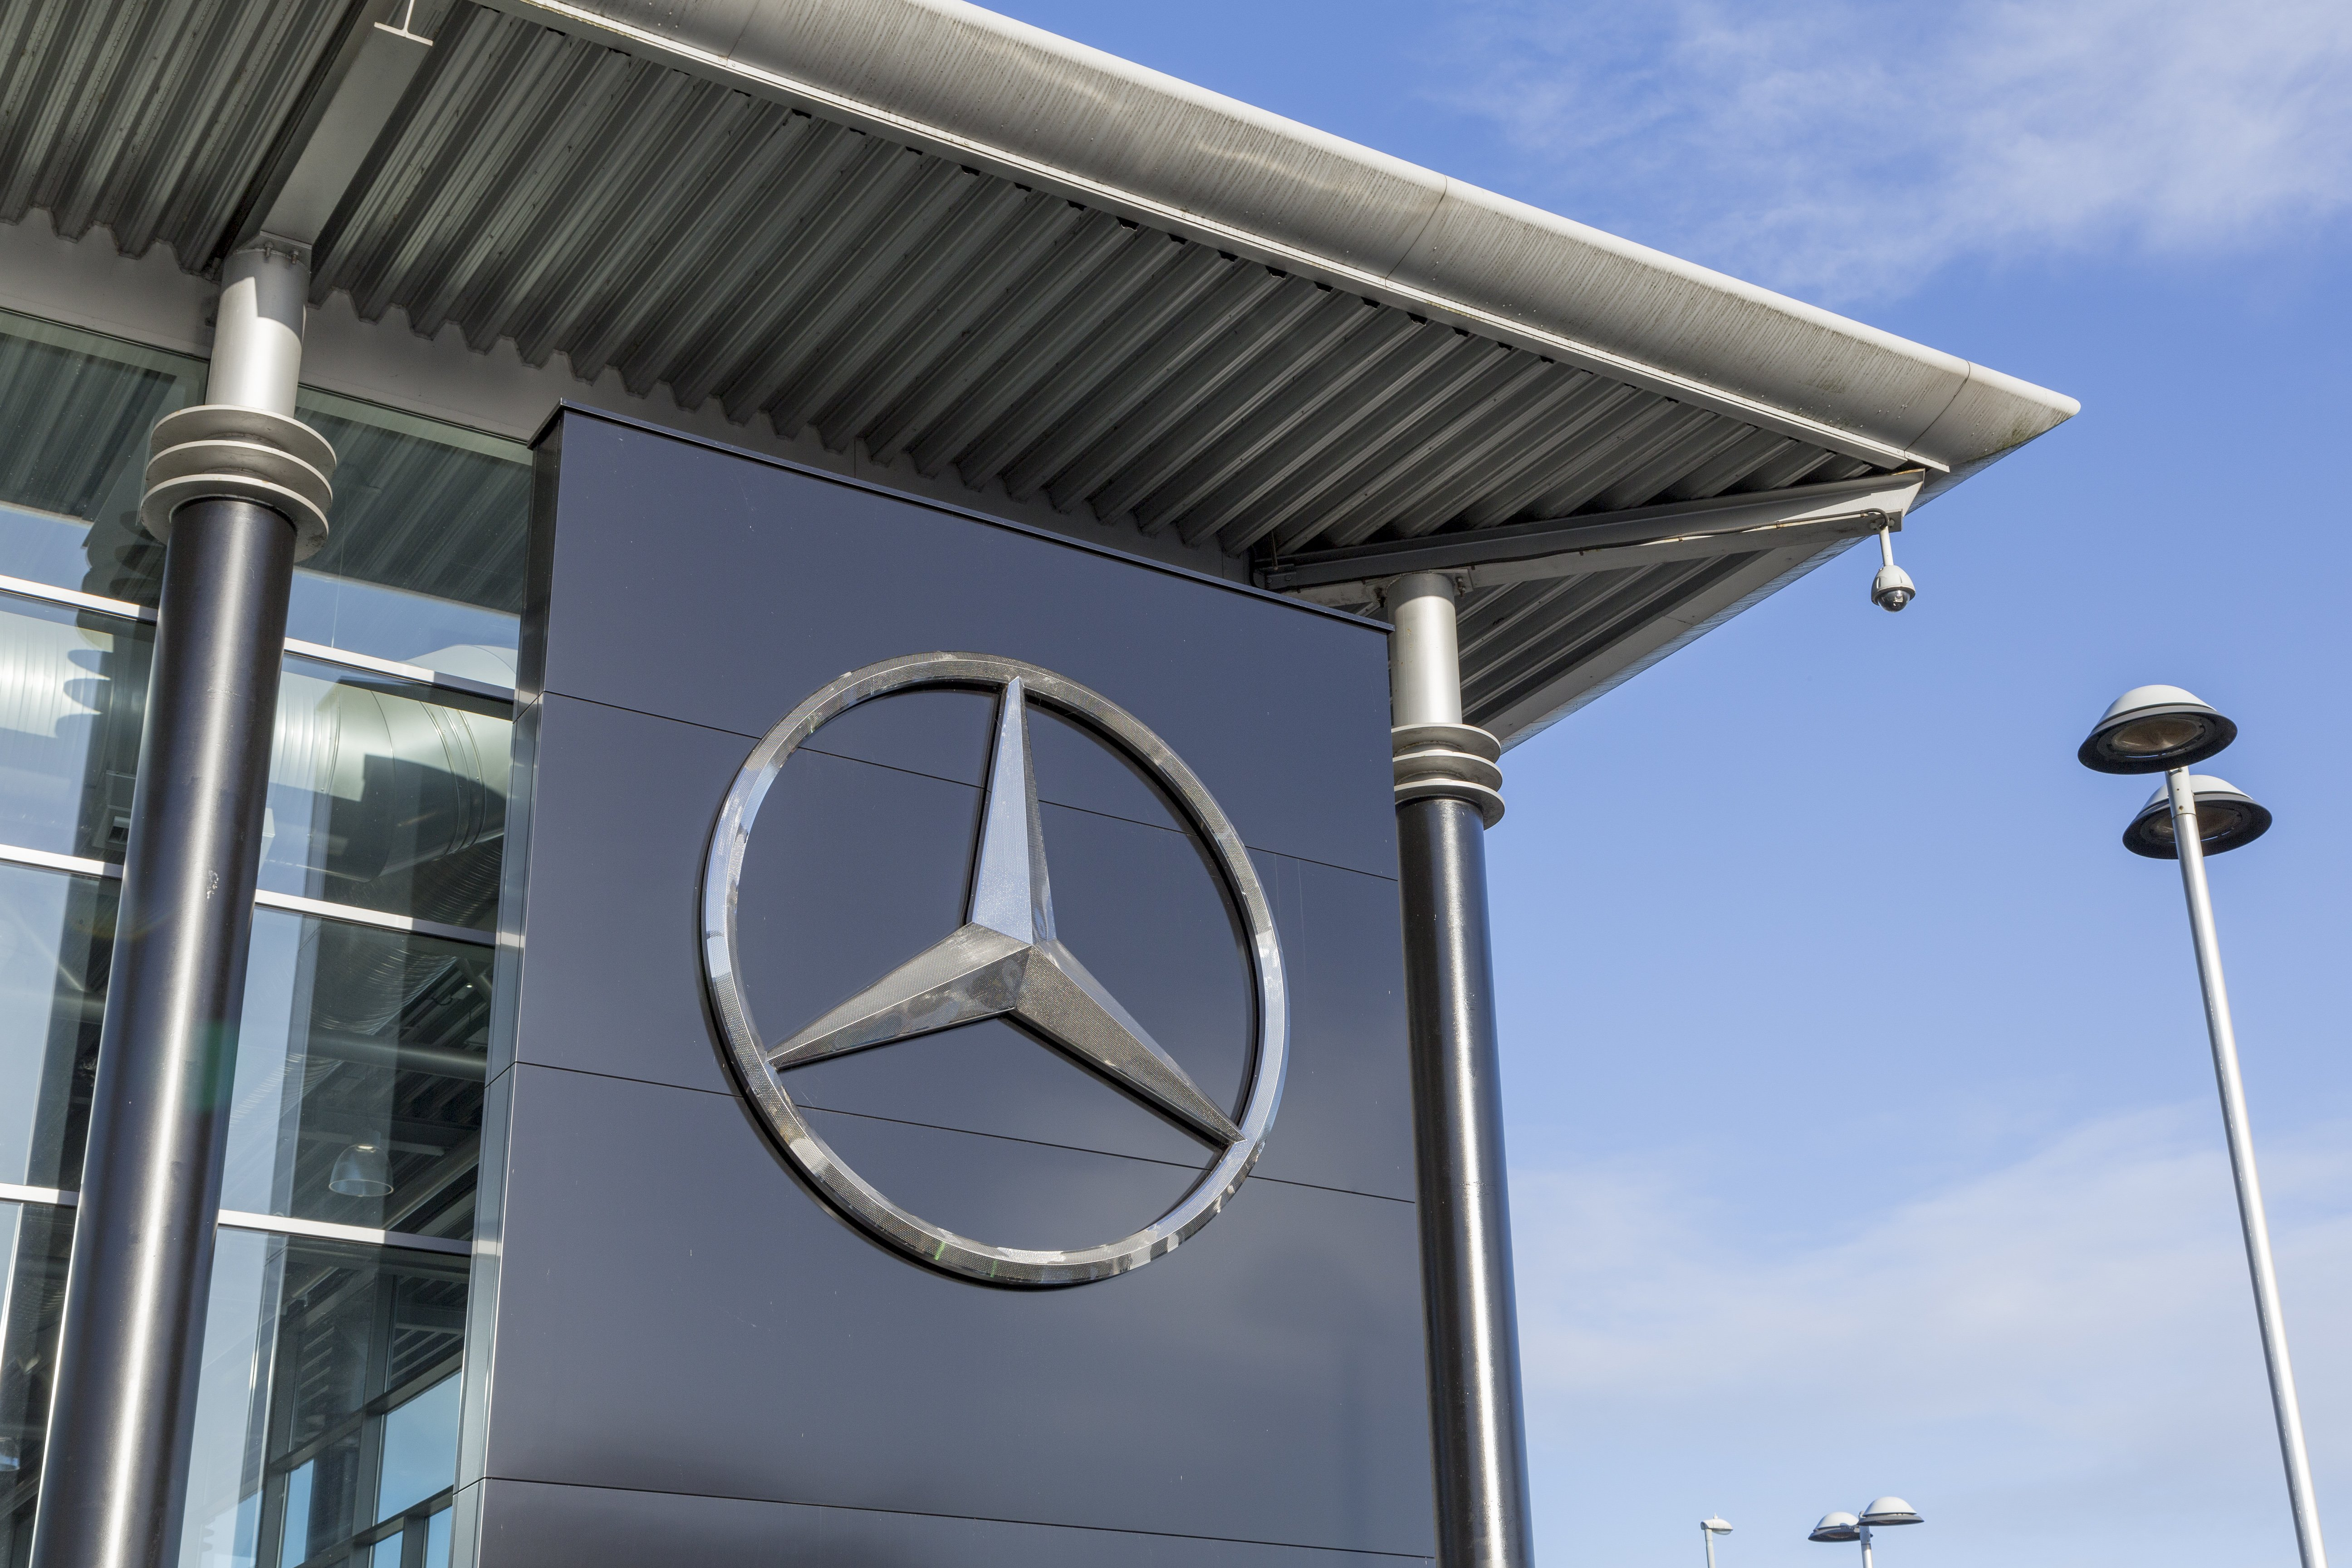 Celebrating Working With The Worlds Largest Mercedes-Benz Retailer